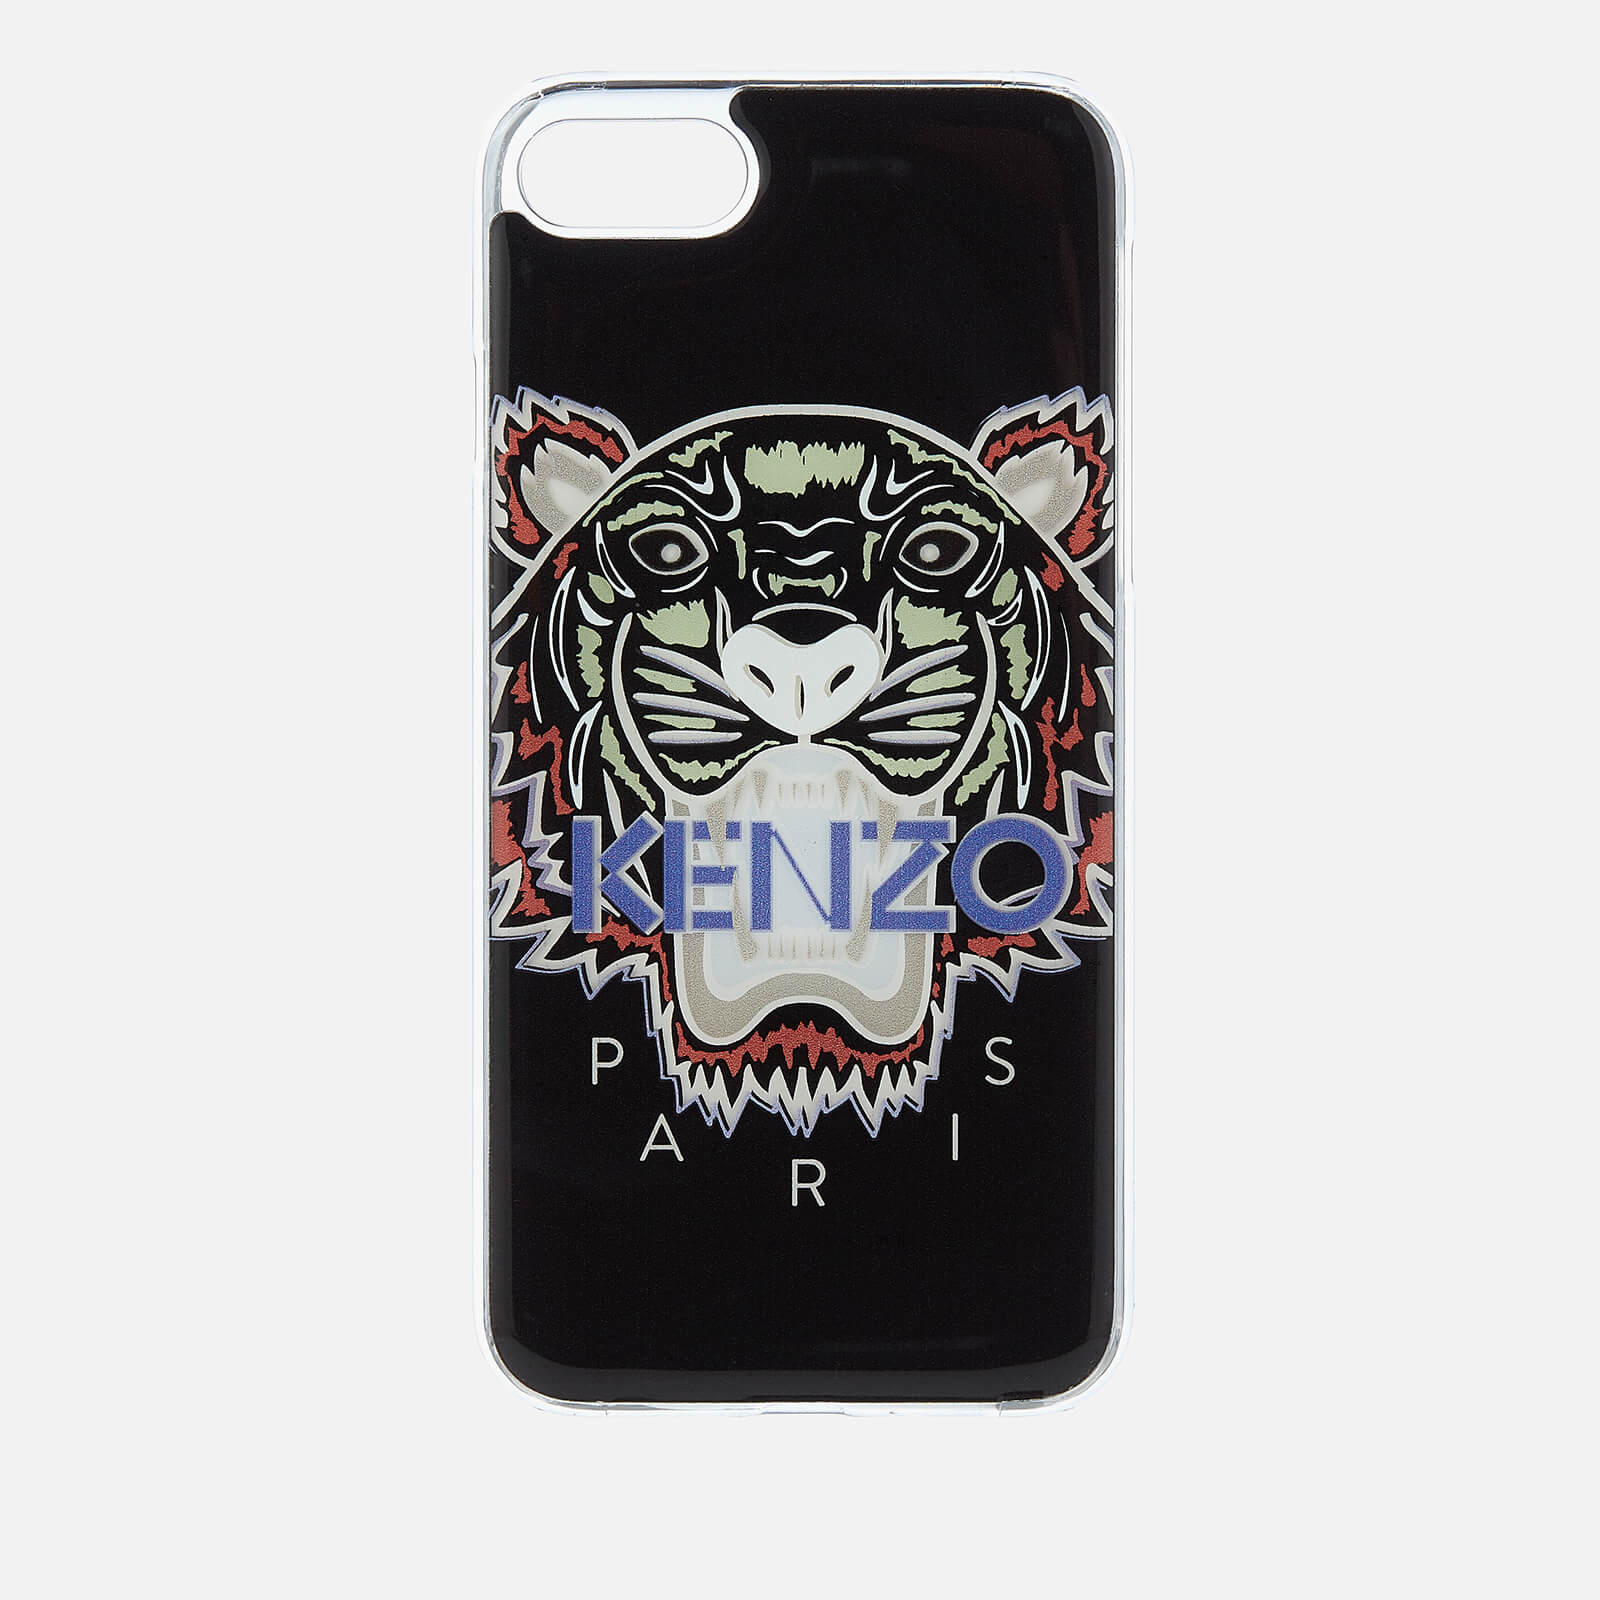 online store db4c7 9e323 KENZO Men's Tiger Silicone iPhone 7 Plus/8 Plus Case - Black